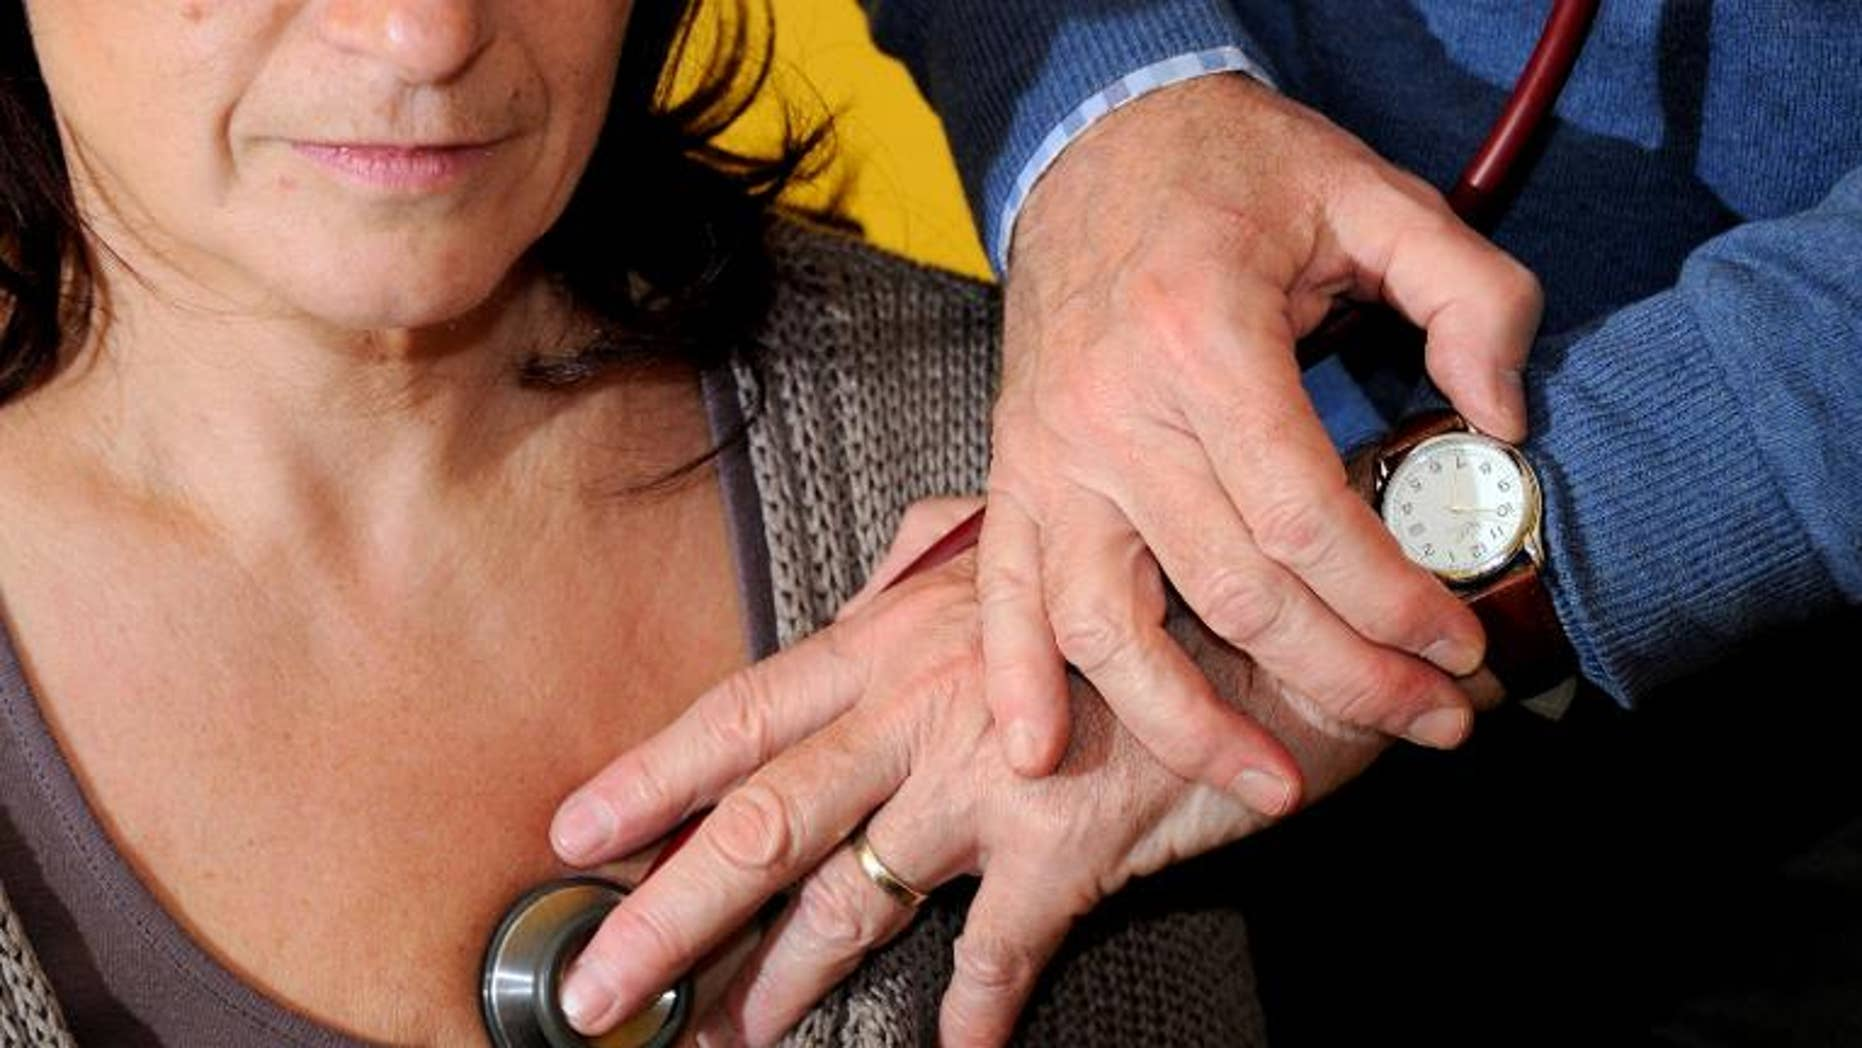 A doctor examines a patient in Godewaersvelde, northern France on September 25, 2012